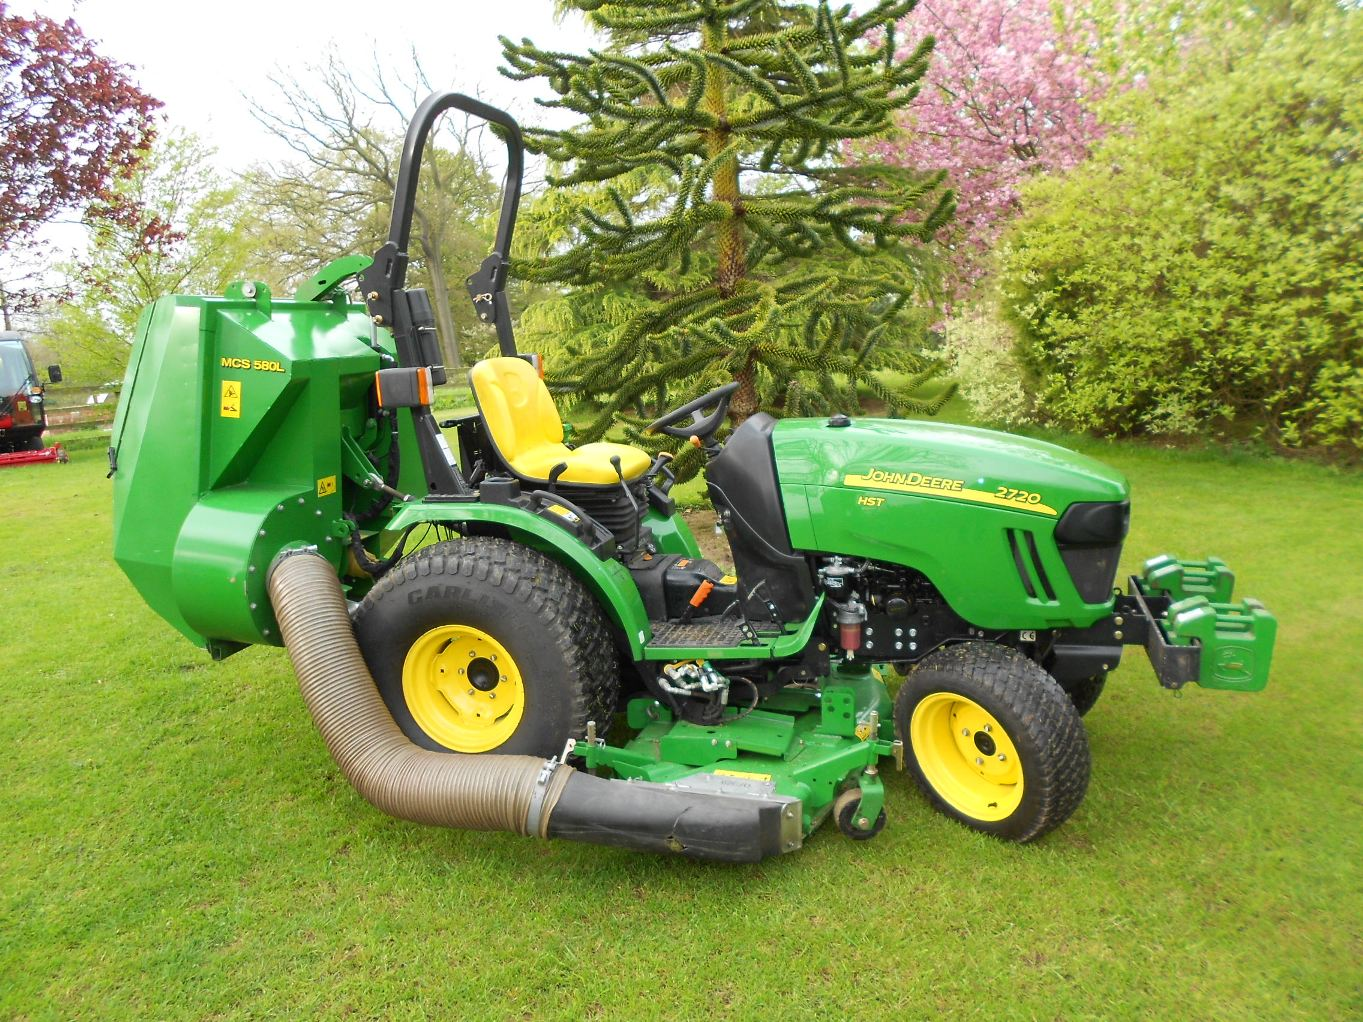 Tractors lawn mowers for sale images for Garden machinery for sale